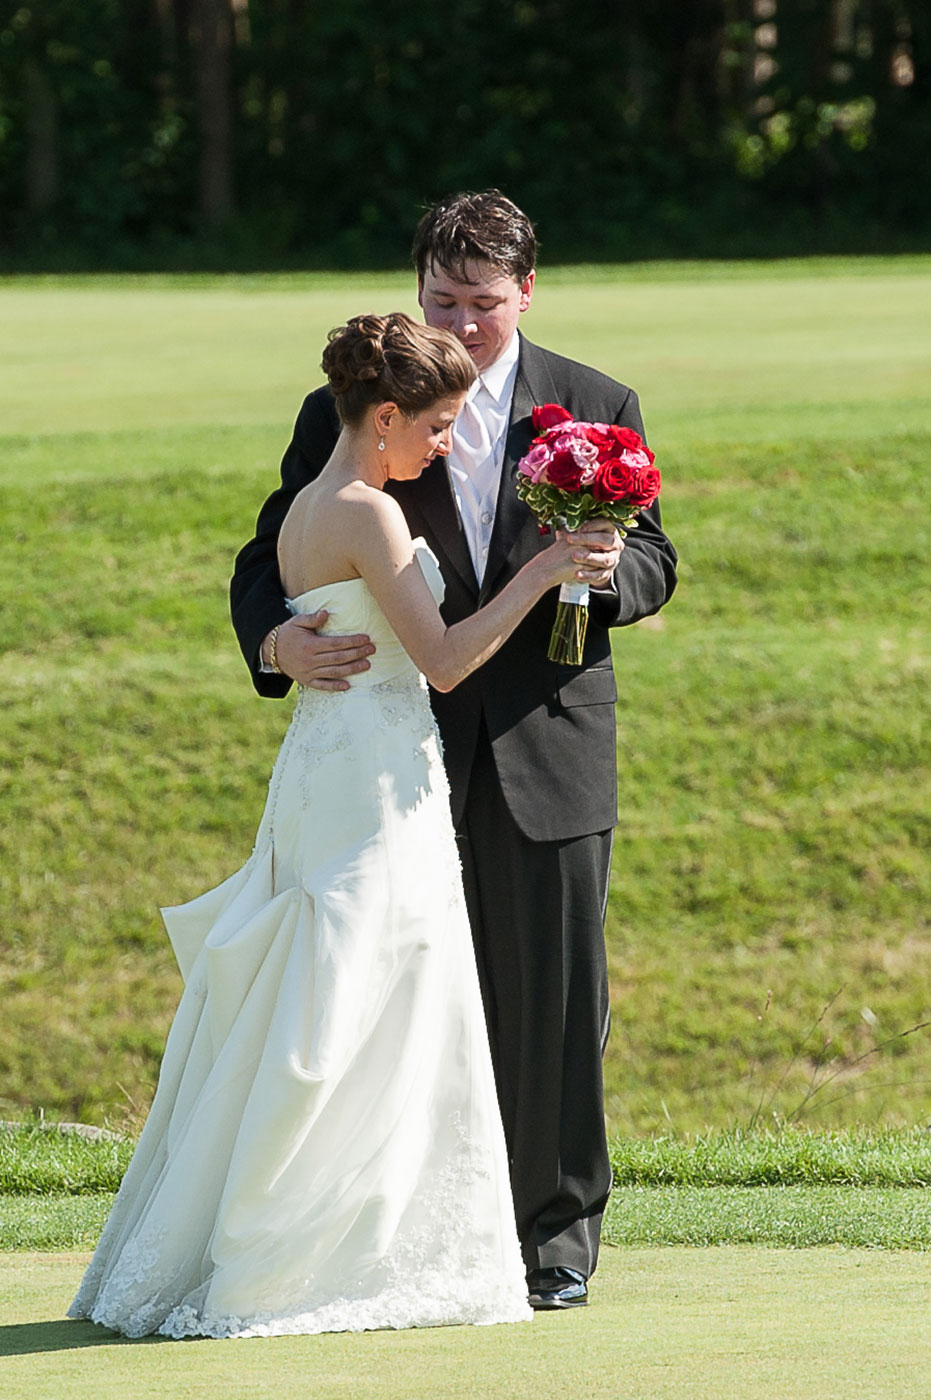 weddings-kelly-joe-gallery26